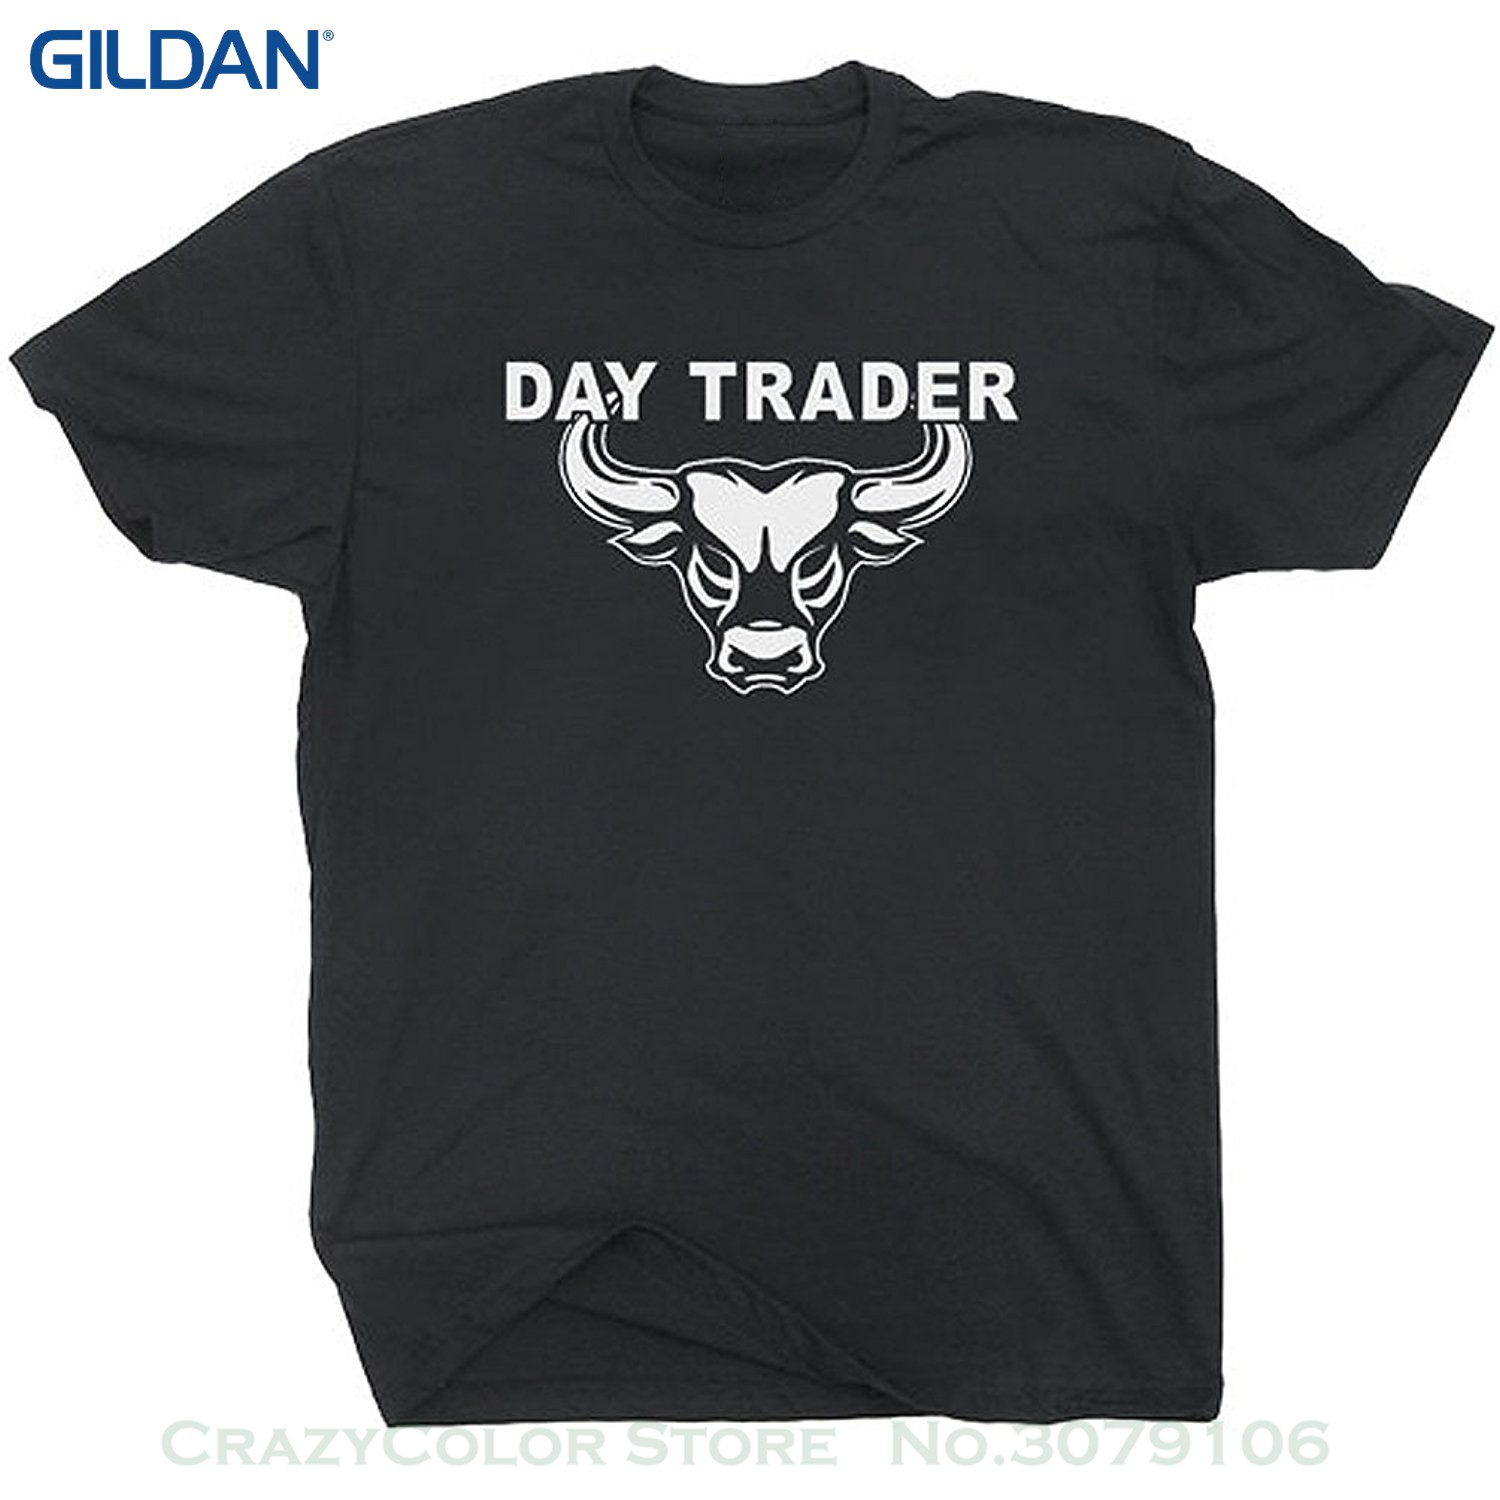 Mens Short Sleeve Tees Day Trader T Shirt Wall Street Mad Stock Market Trading Cramer Money Tee Bull Bear Jim image